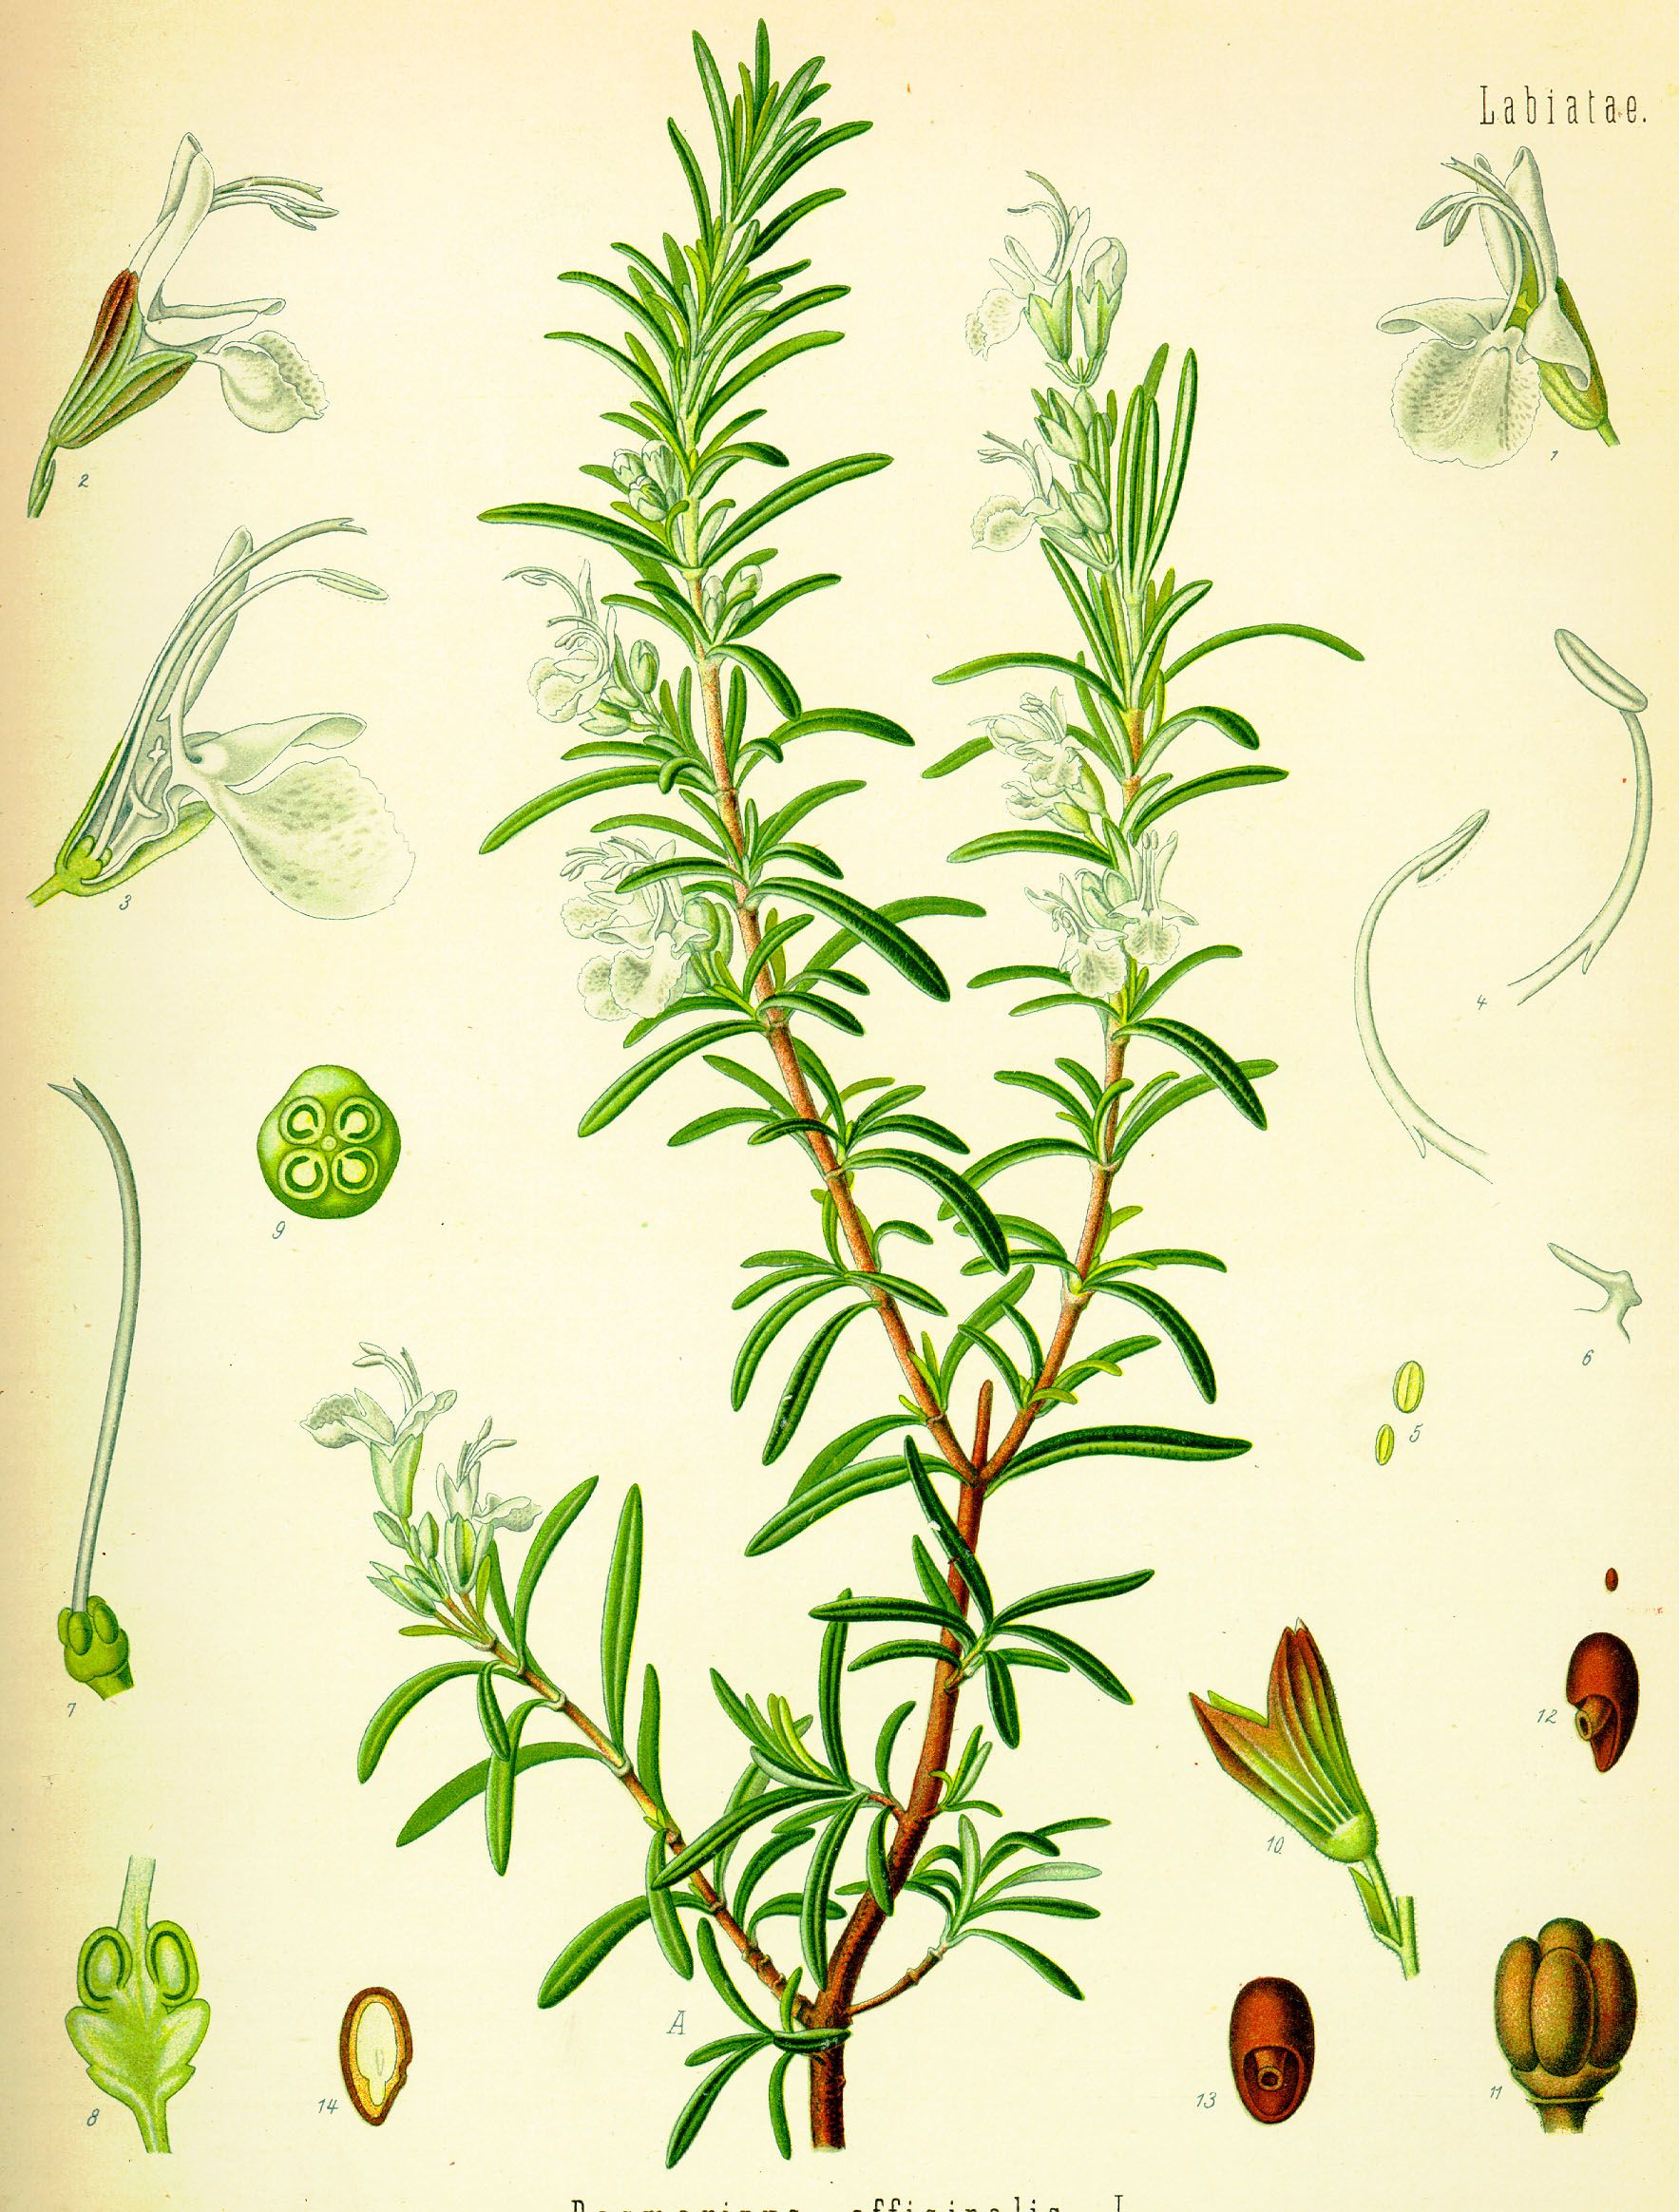 medium resolution of rosmarinus officinalis botanical drawings botanical prints botanical illustration plant illustration rosemary plant